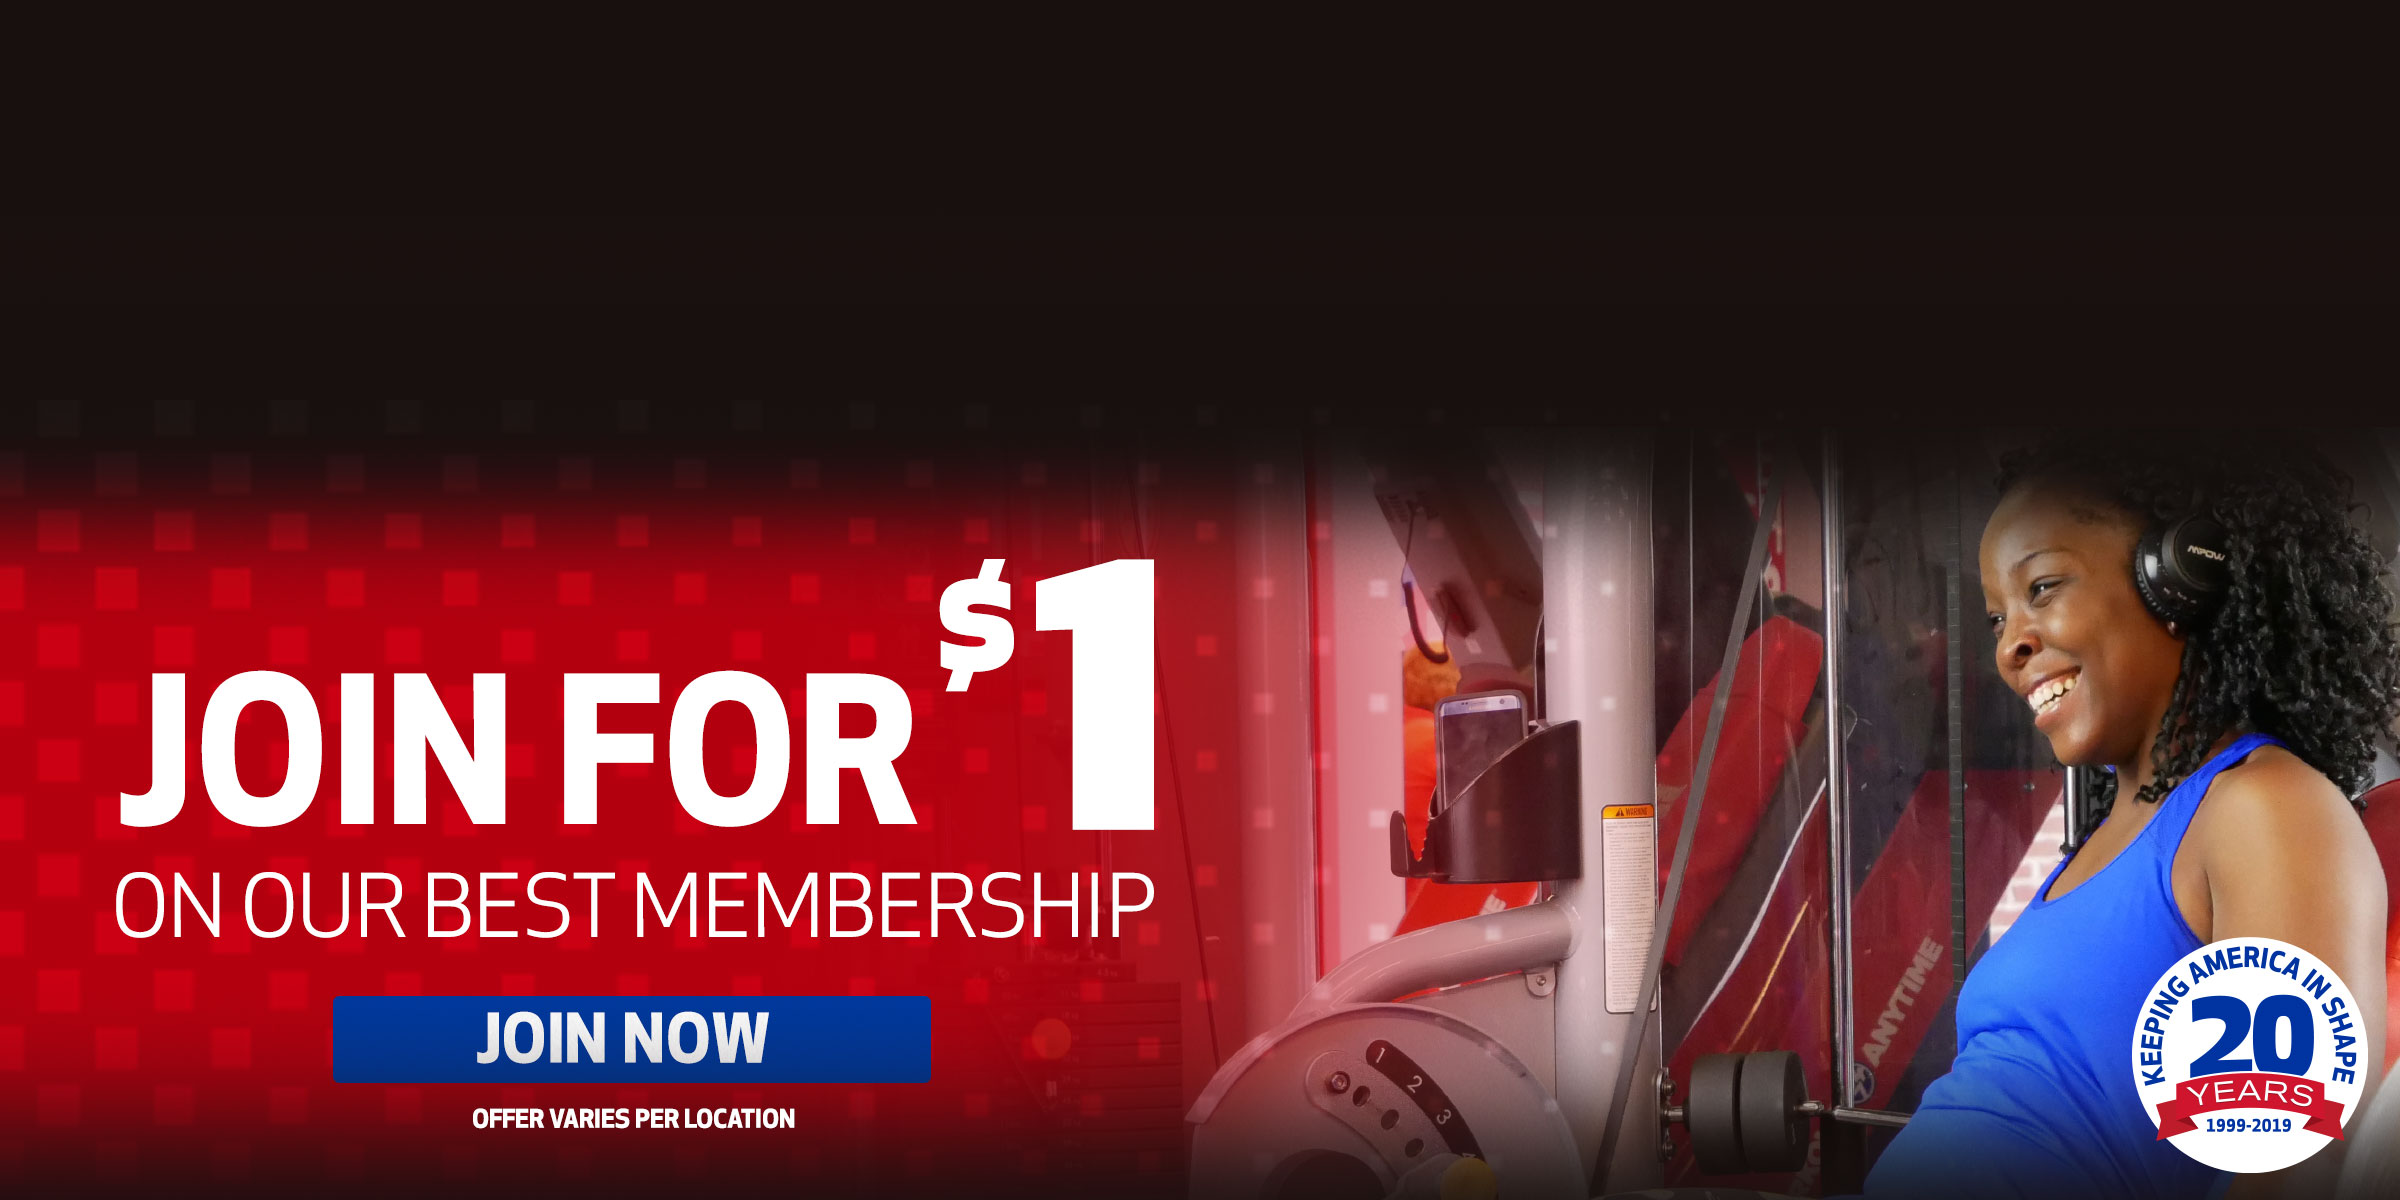 Join for $1 on Our Best Membership